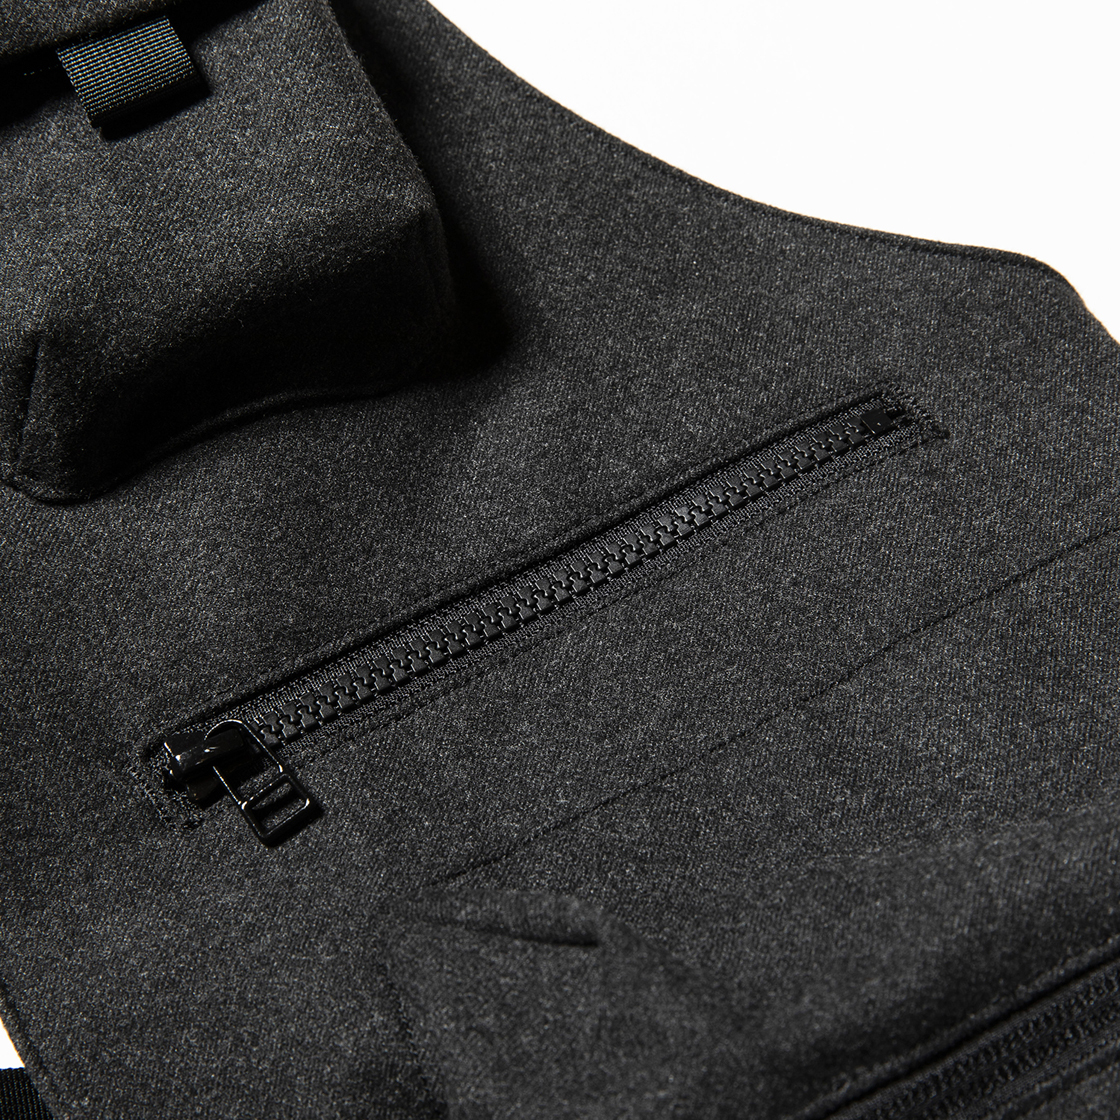 Tech Cloth Split Luggage Vest Coal